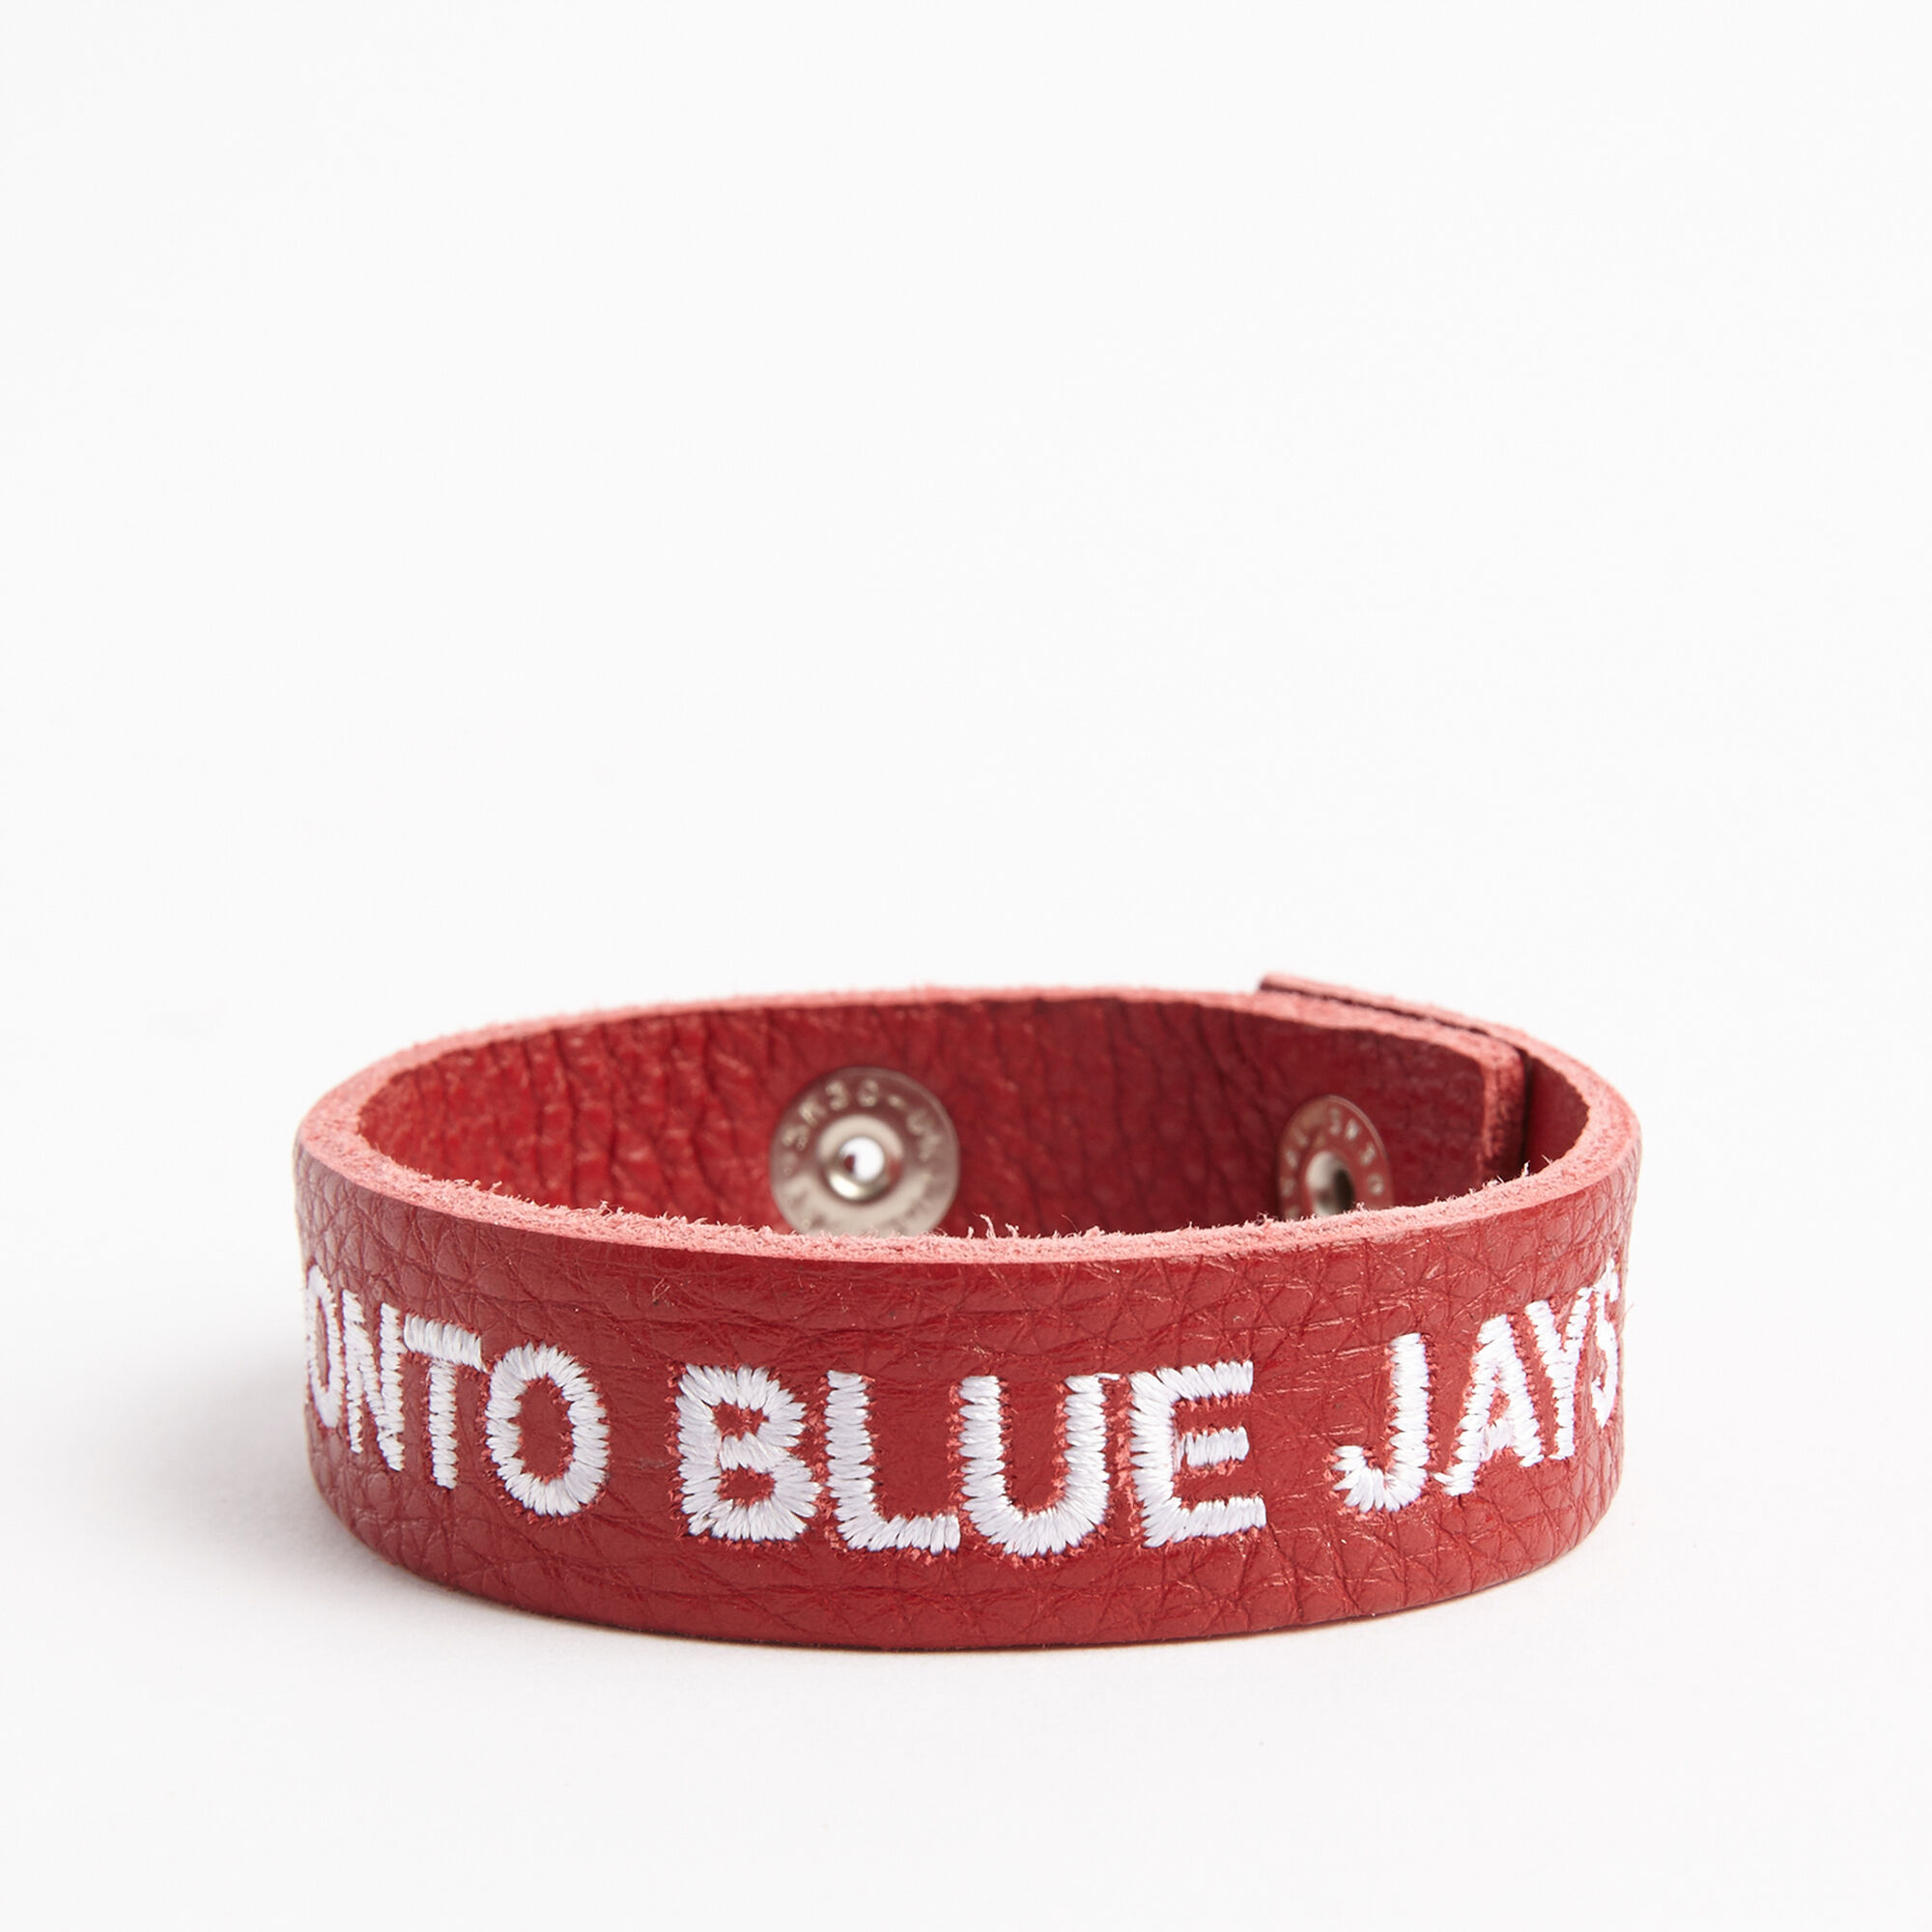 Blue Jays Leather Bracelet